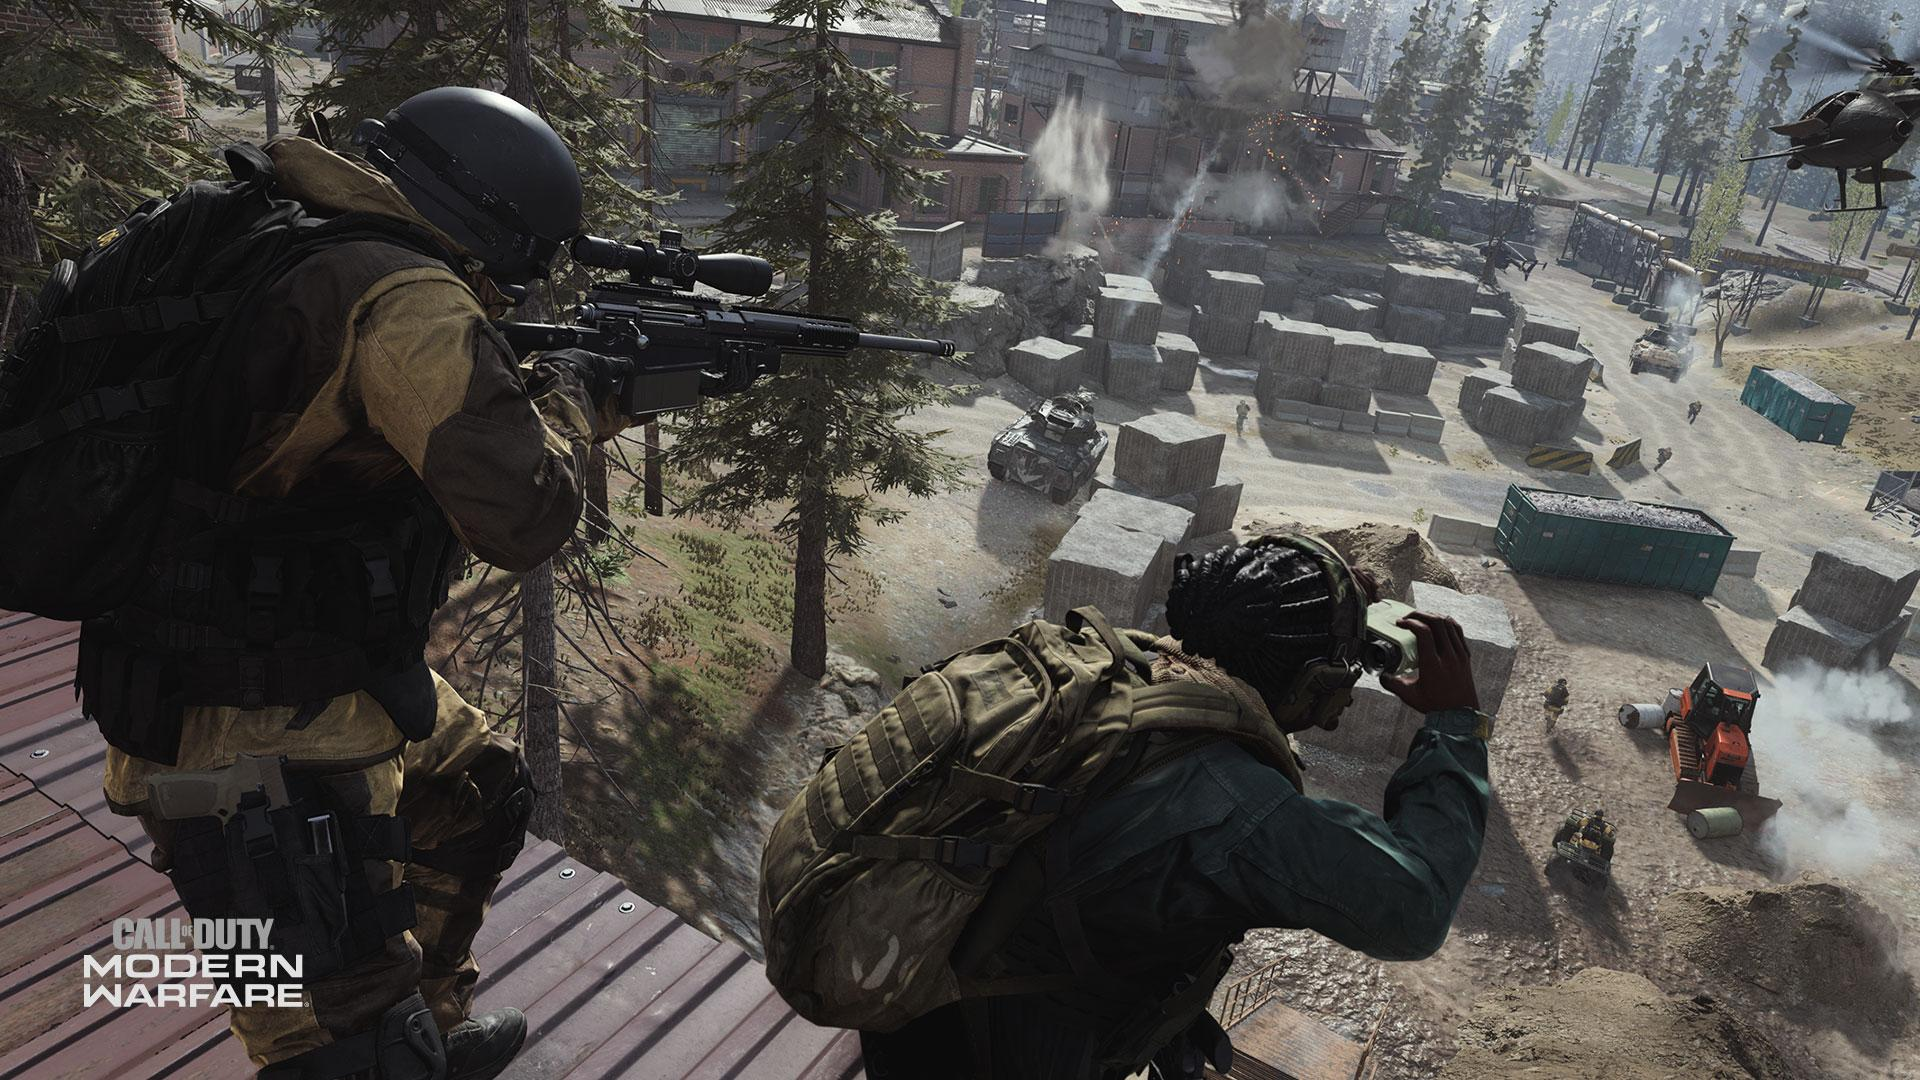 How to solve Modern Warfare crashing issue on PC